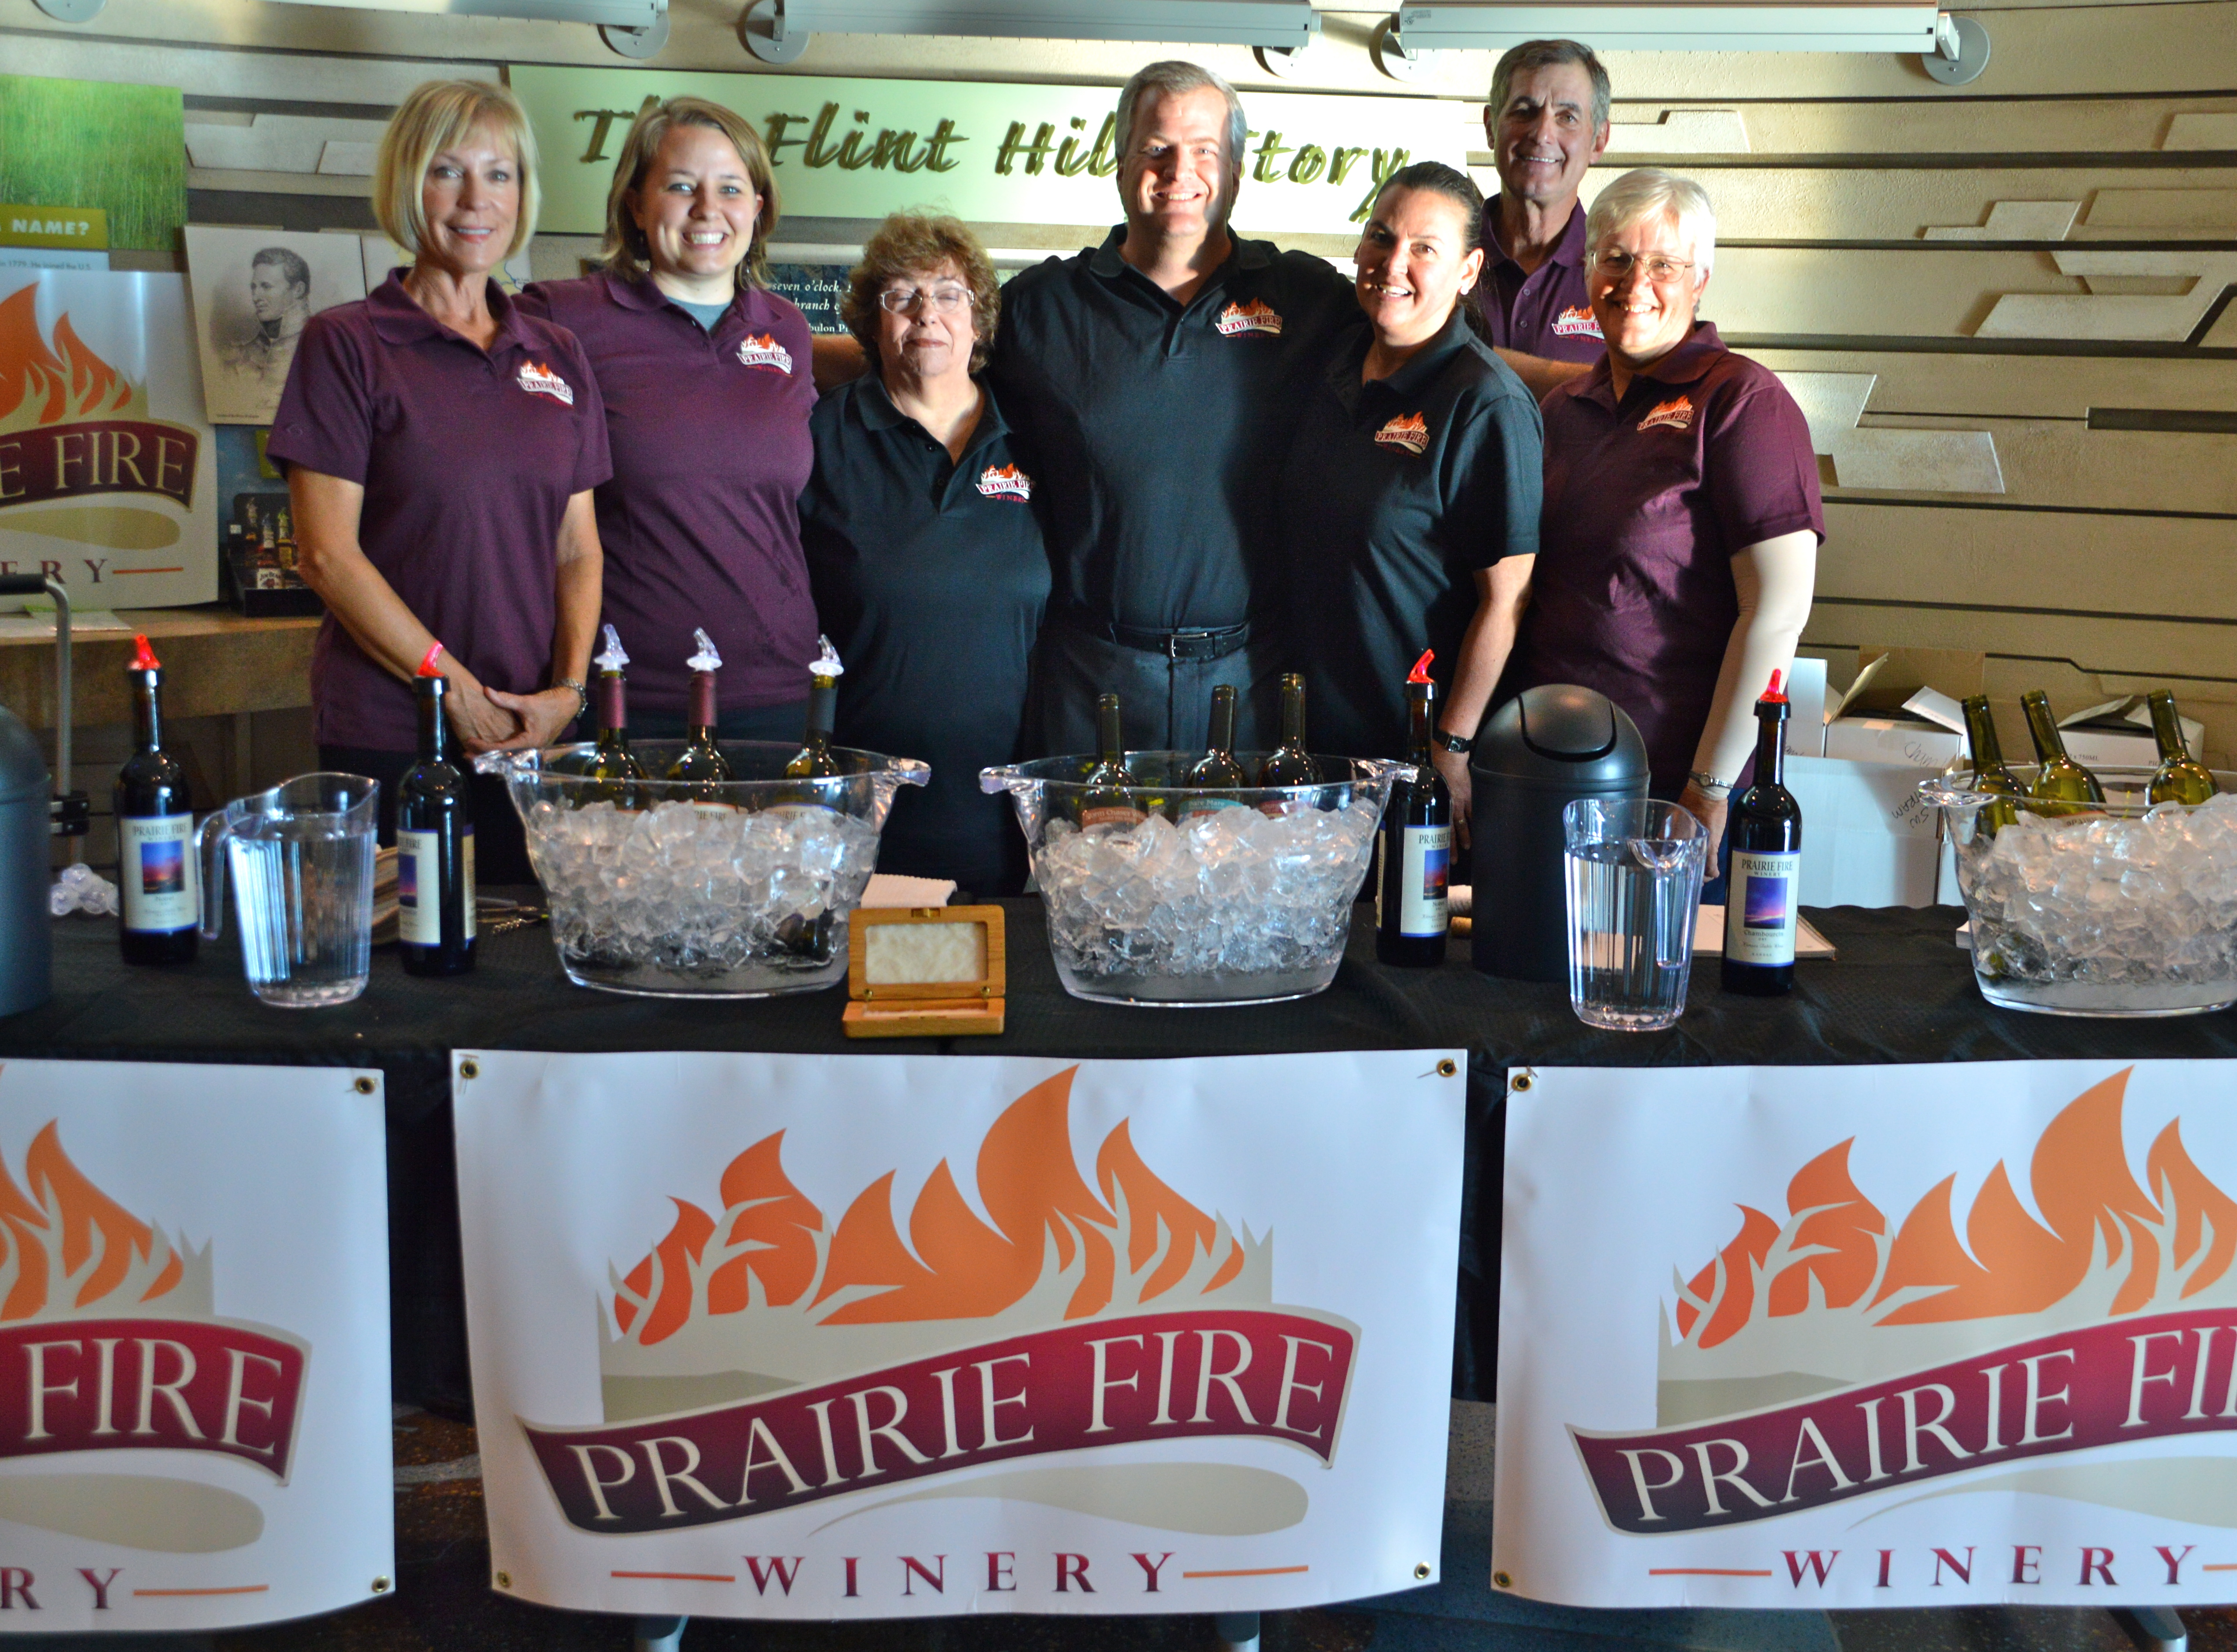 The Prairie Fire Winery Kansas Wine Team at the Flint Hills Discovery Center